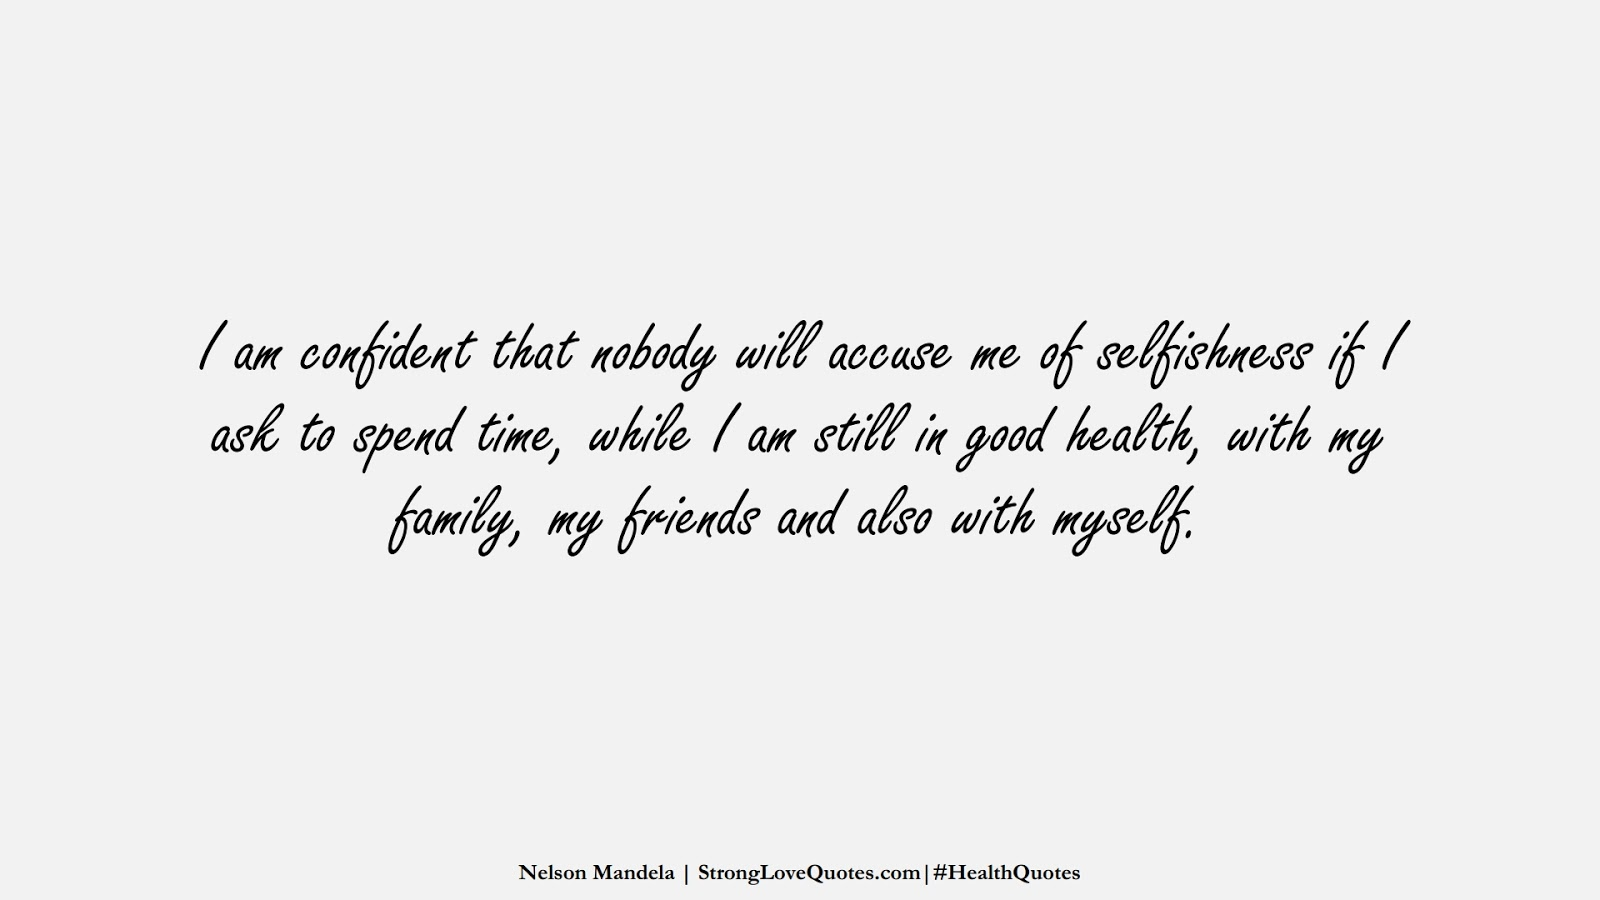 I am confident that nobody will accuse me of selfishness if I ask to spend time, while I am still in good health, with my family, my friends and also with myself. (Nelson Mandela);  #HealthQuotes